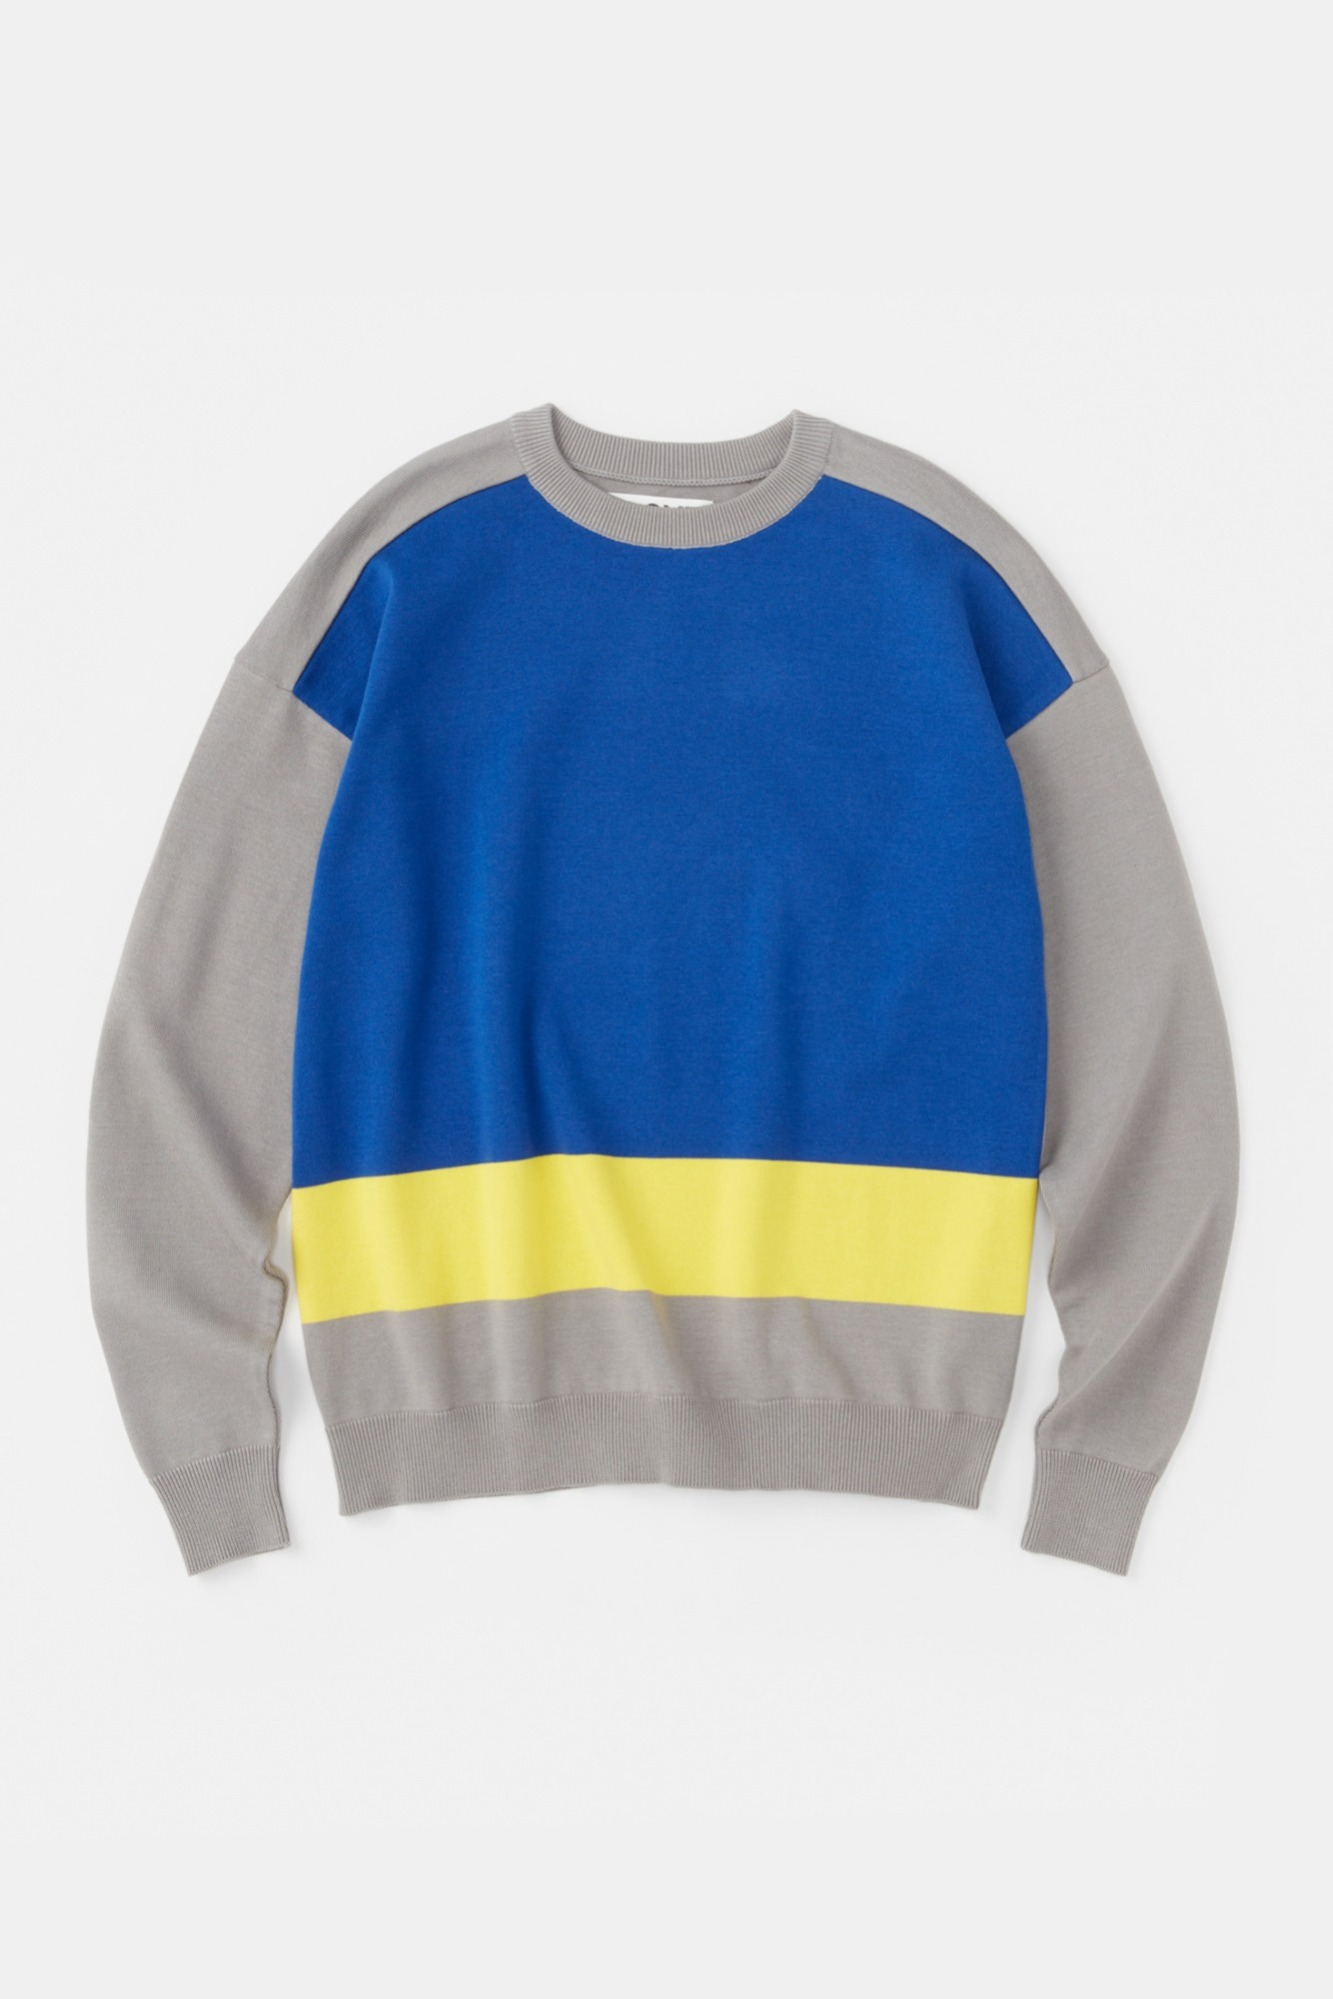 "ALOYE G.F.G.S. Cotton Knitted Sweater ""Grey"""